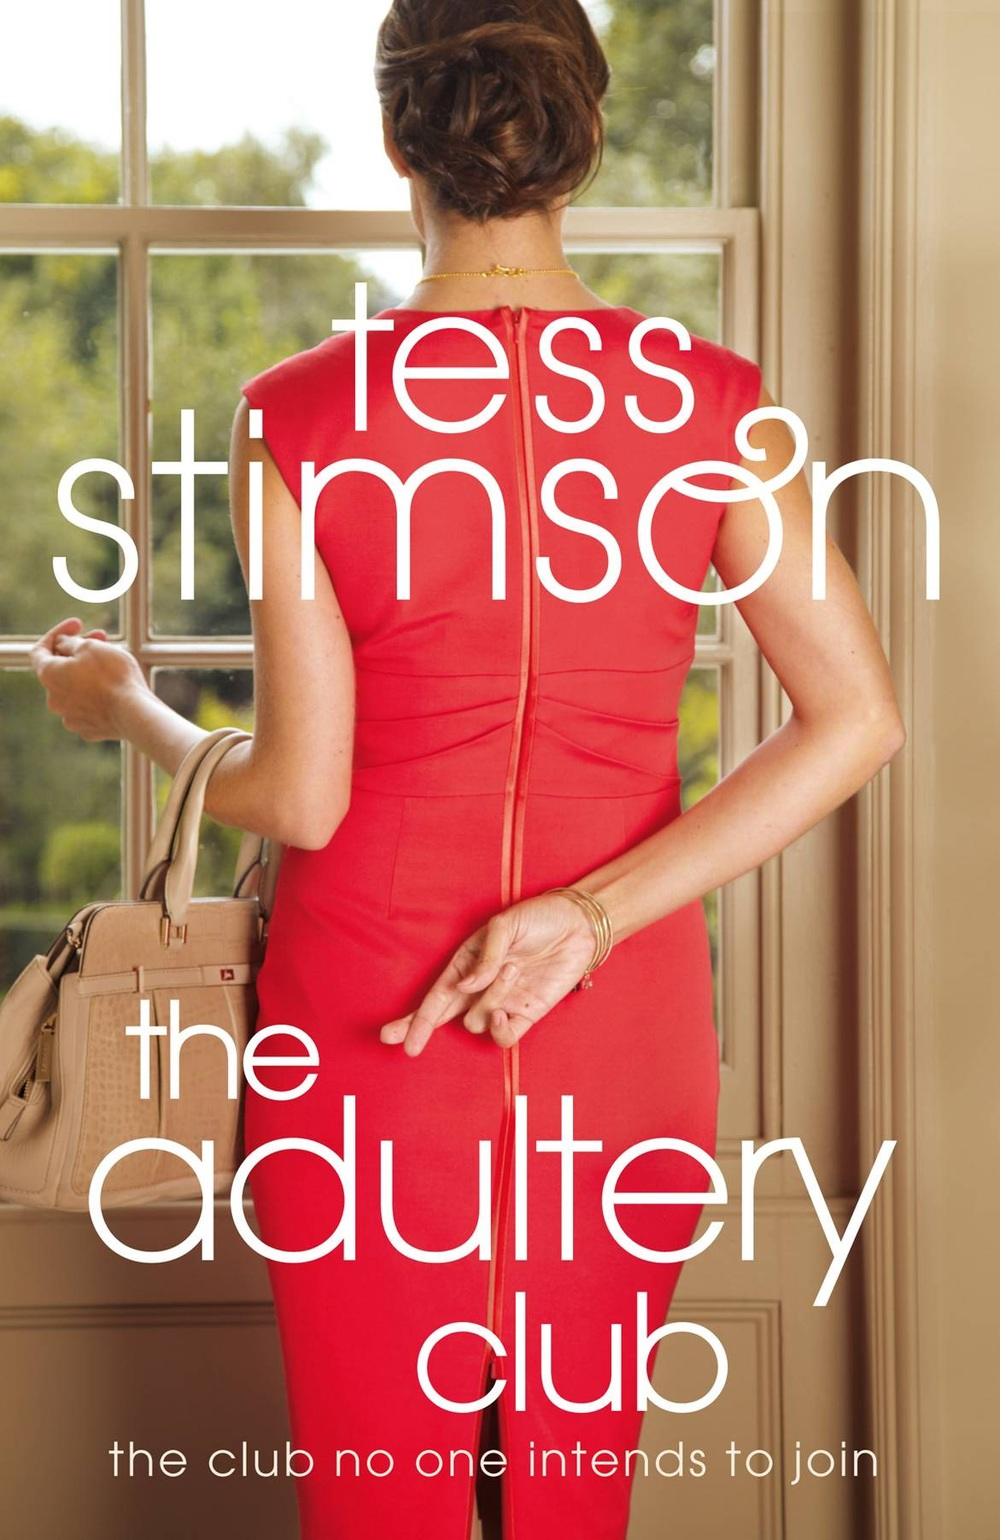 AN OPEN MARRIAGE Contemporary Fiction, 269 pages Macmillan, 3 July 2014 Dramatic and emotional story, told in Tess' trademark multiple first-person style